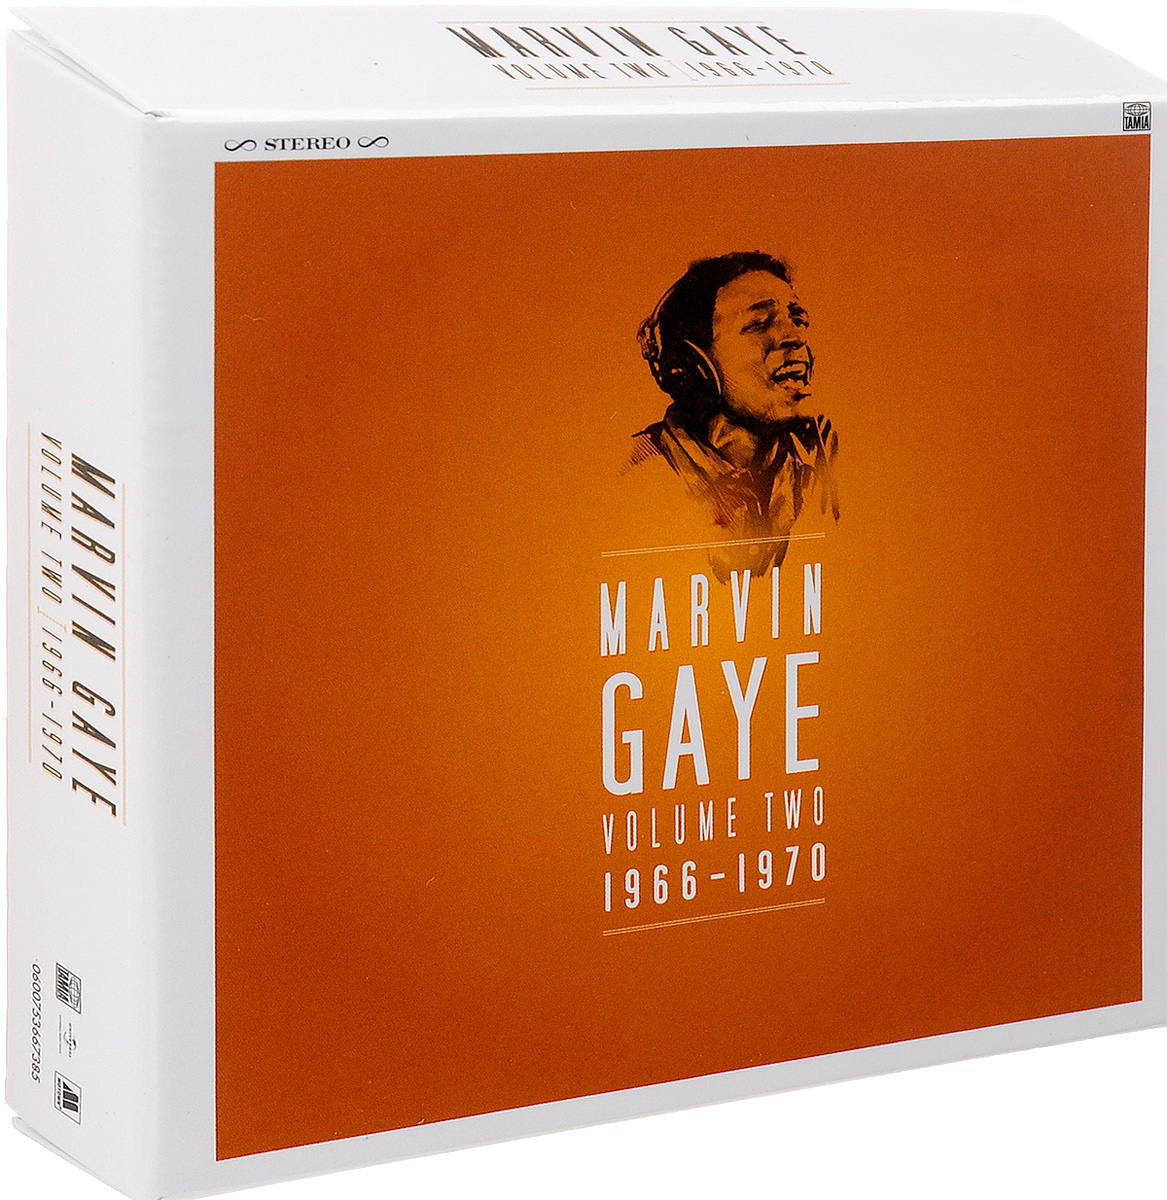 Марвин Гэй,Ким Уэстон,Тамми Тэррелл Marvin Gaye. Volume Two. 1966 - 1970 (8 CD) марвин гэй marvin gaye volume jne 1961 1965 7 lp